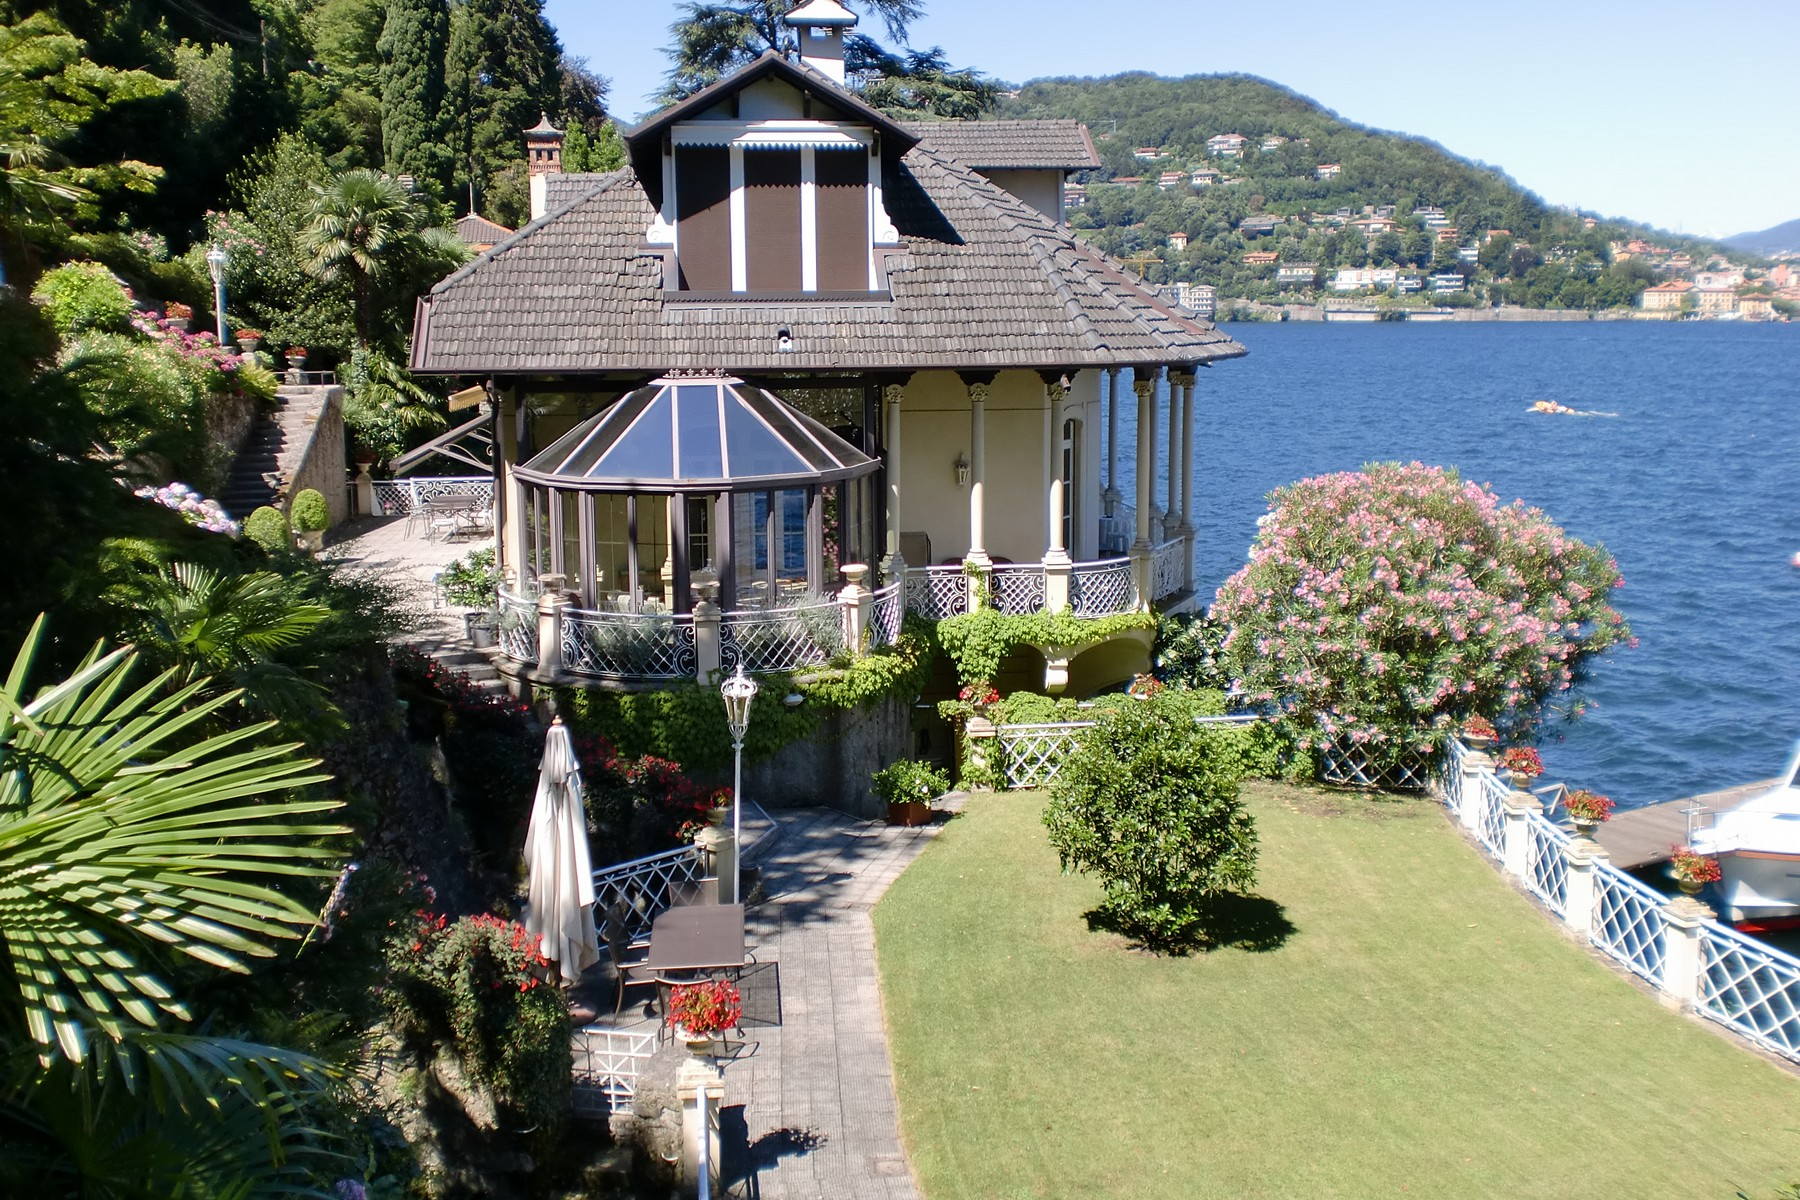 Single Family Home for Sale at Majestic liberty villa on Lake Como Como, Como 22100 Italy